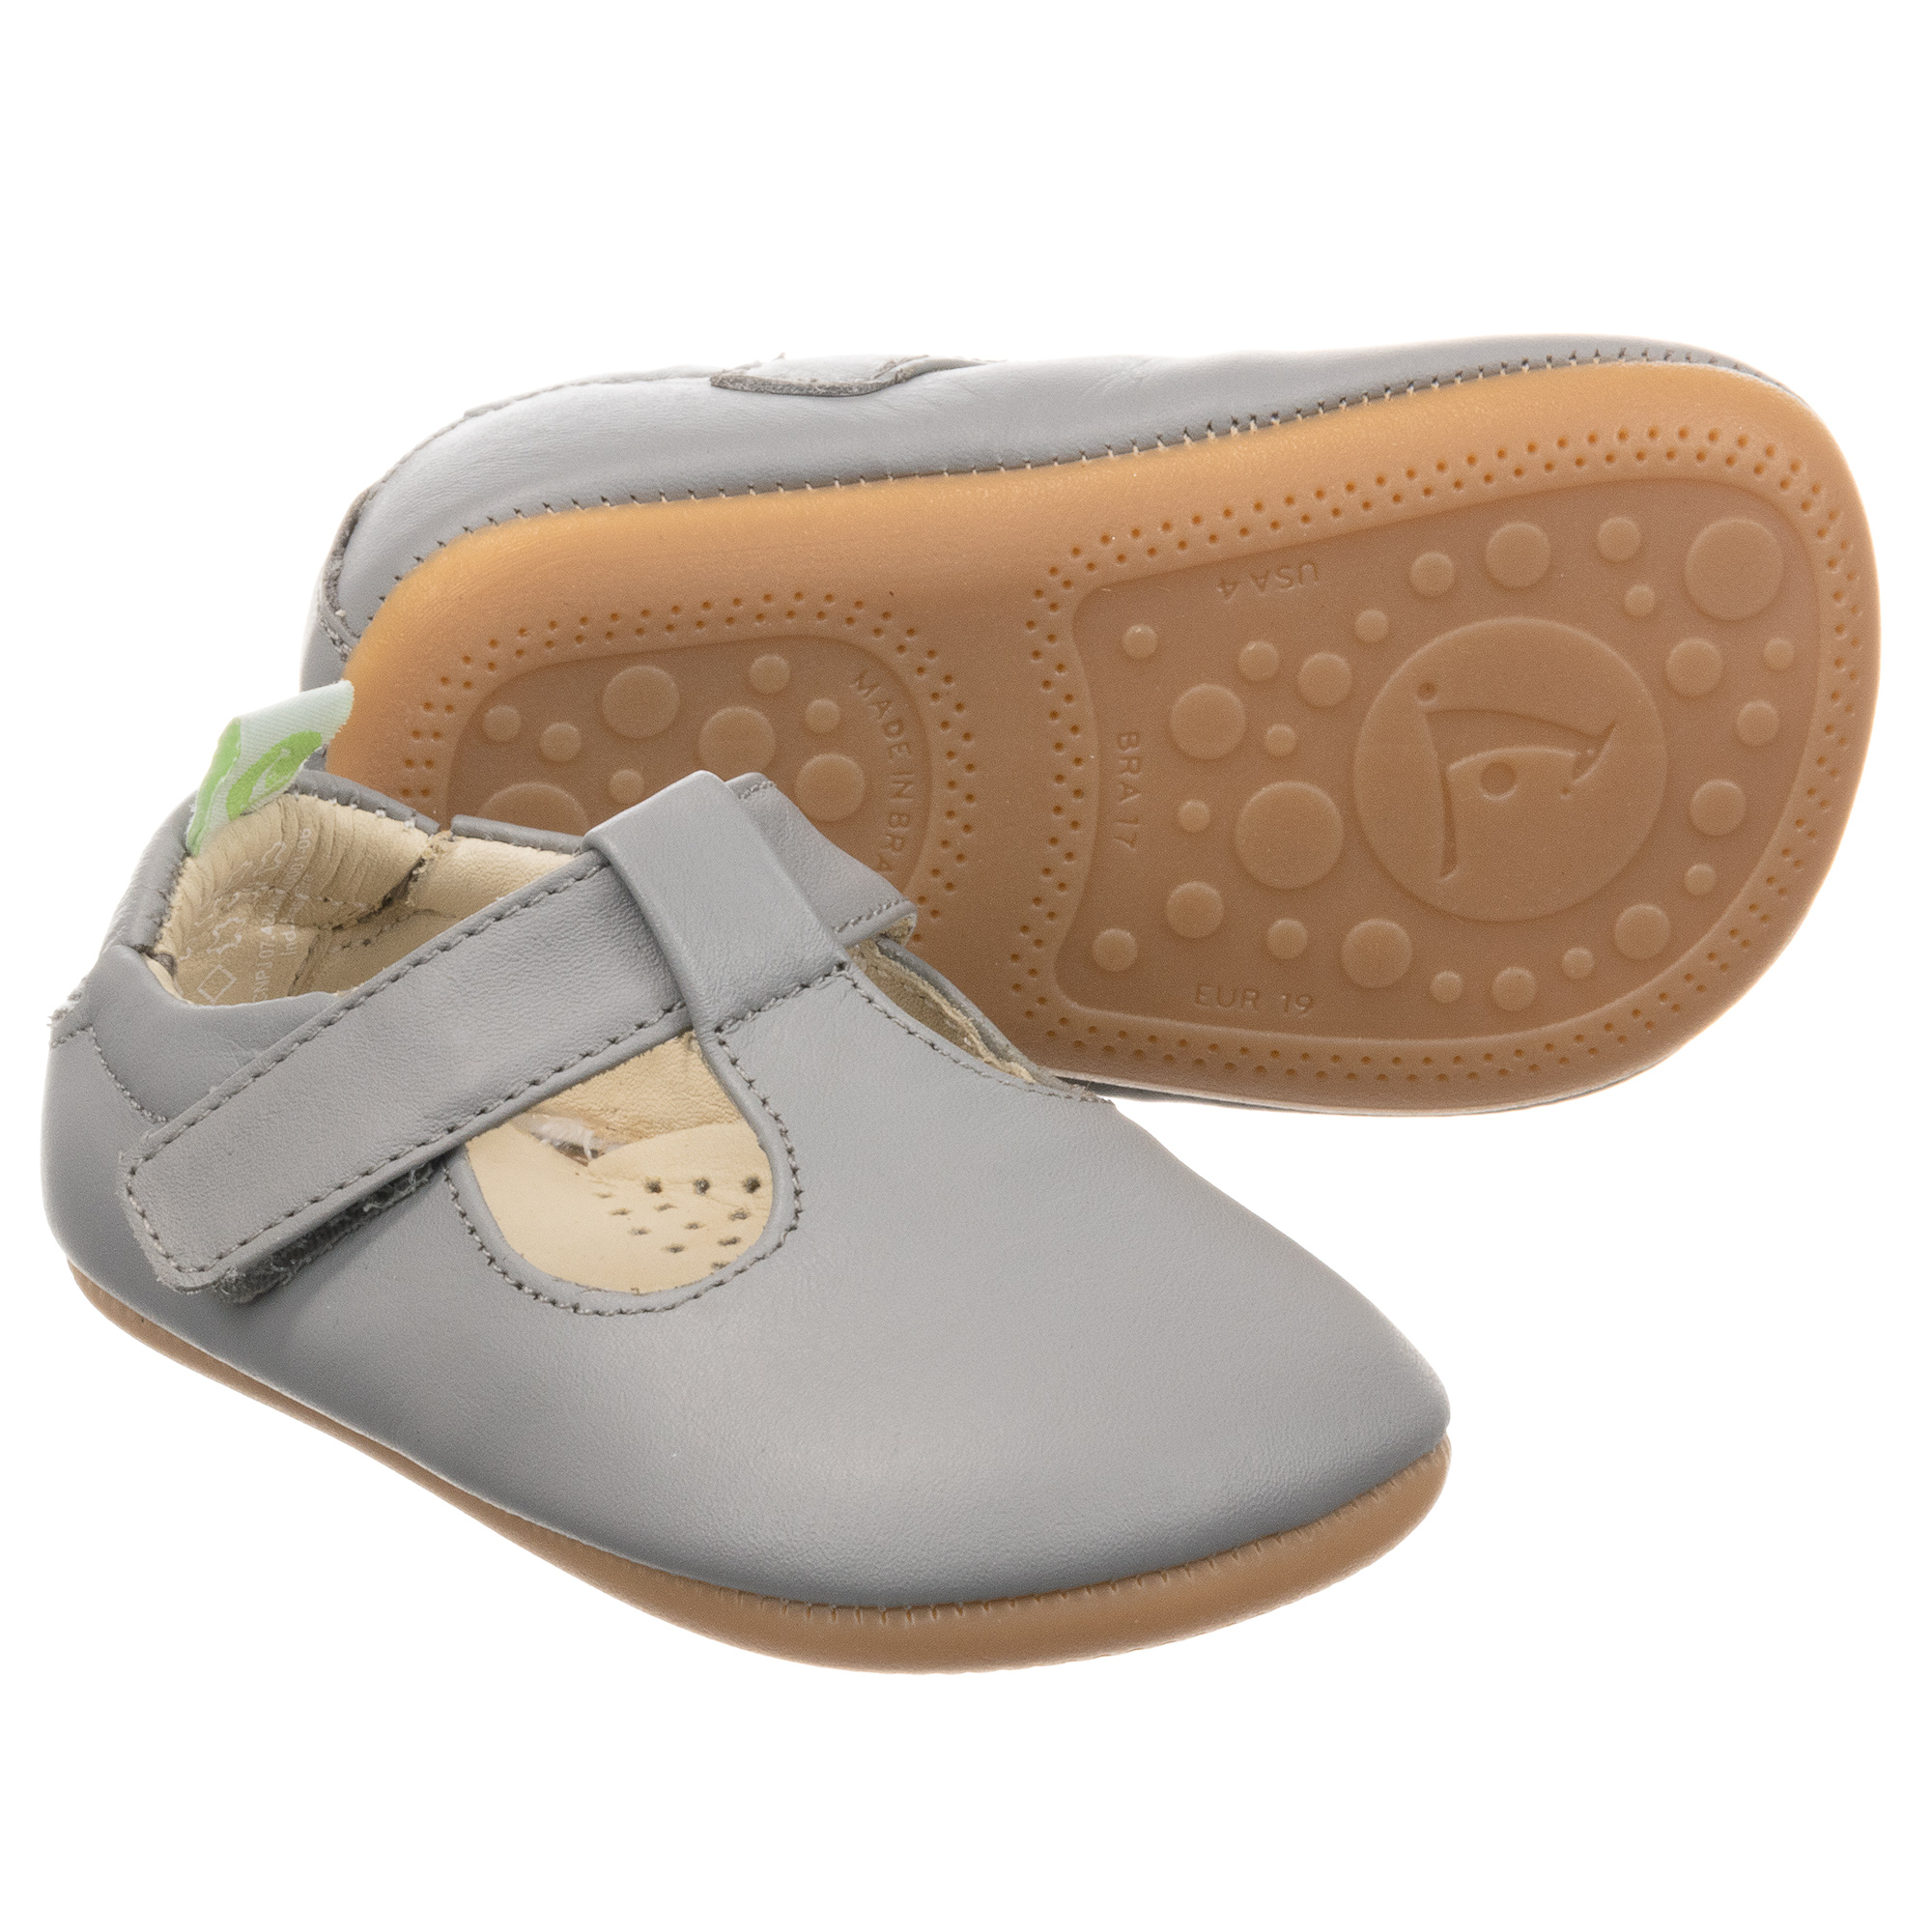 Tip Toey Joey - Grey Leather Baby Shoes